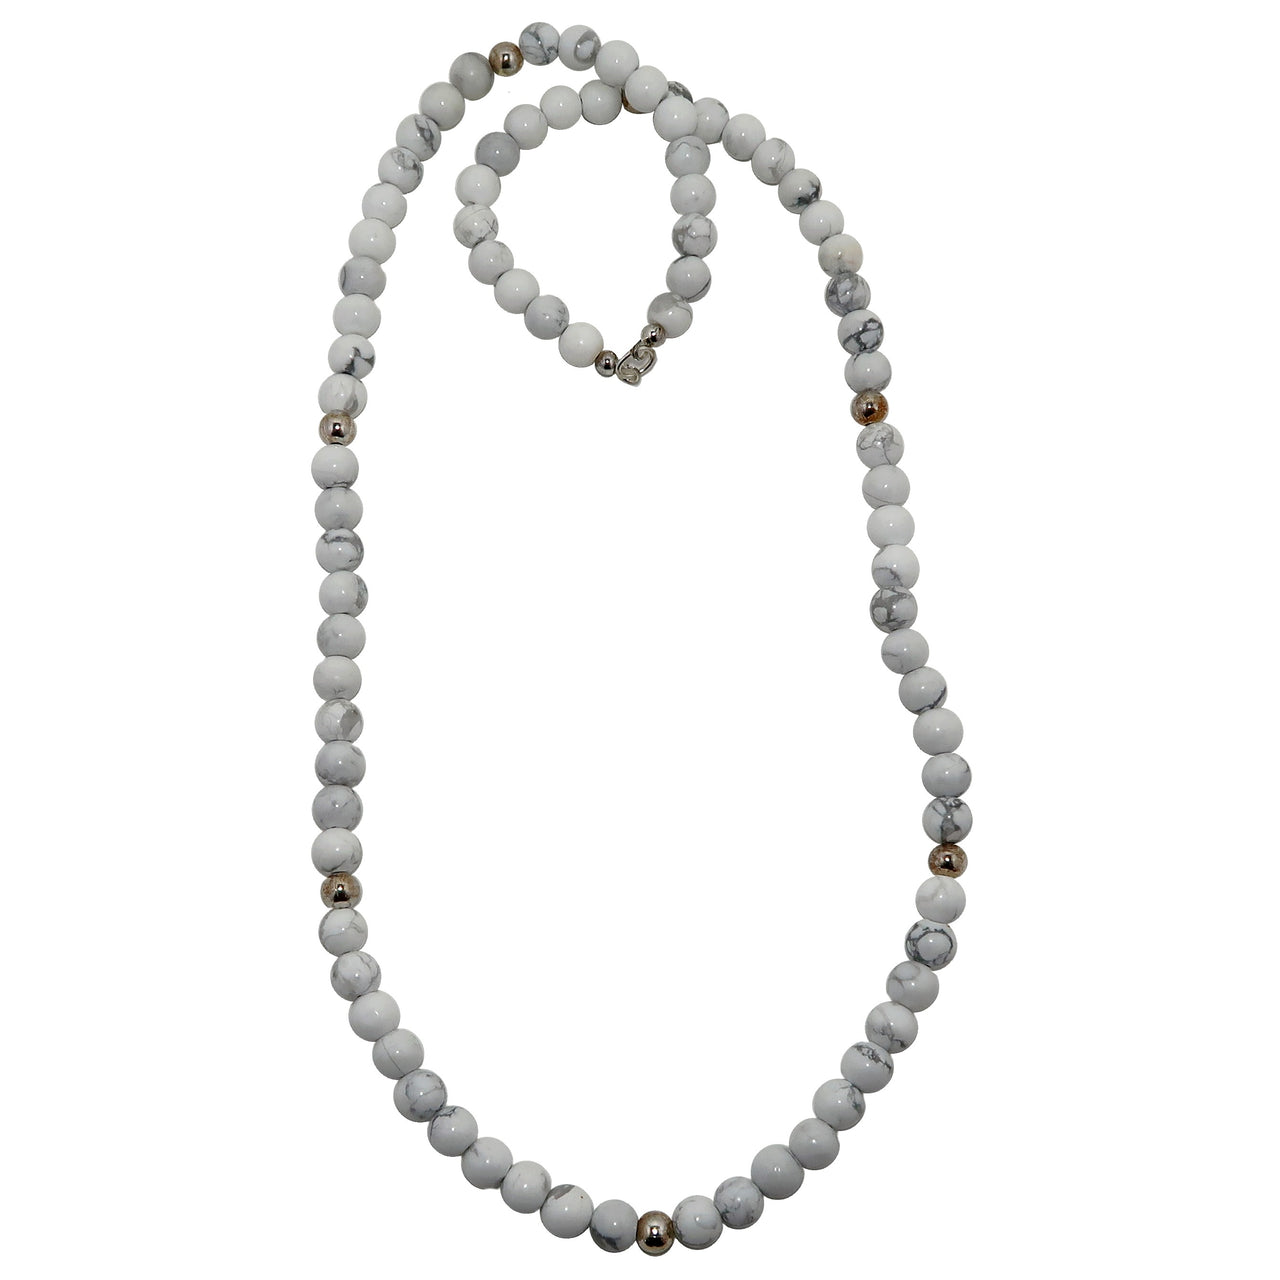 Howlite Necklace 7mm Boutique White Gray Round Beaded No Clasp Gemstone B05